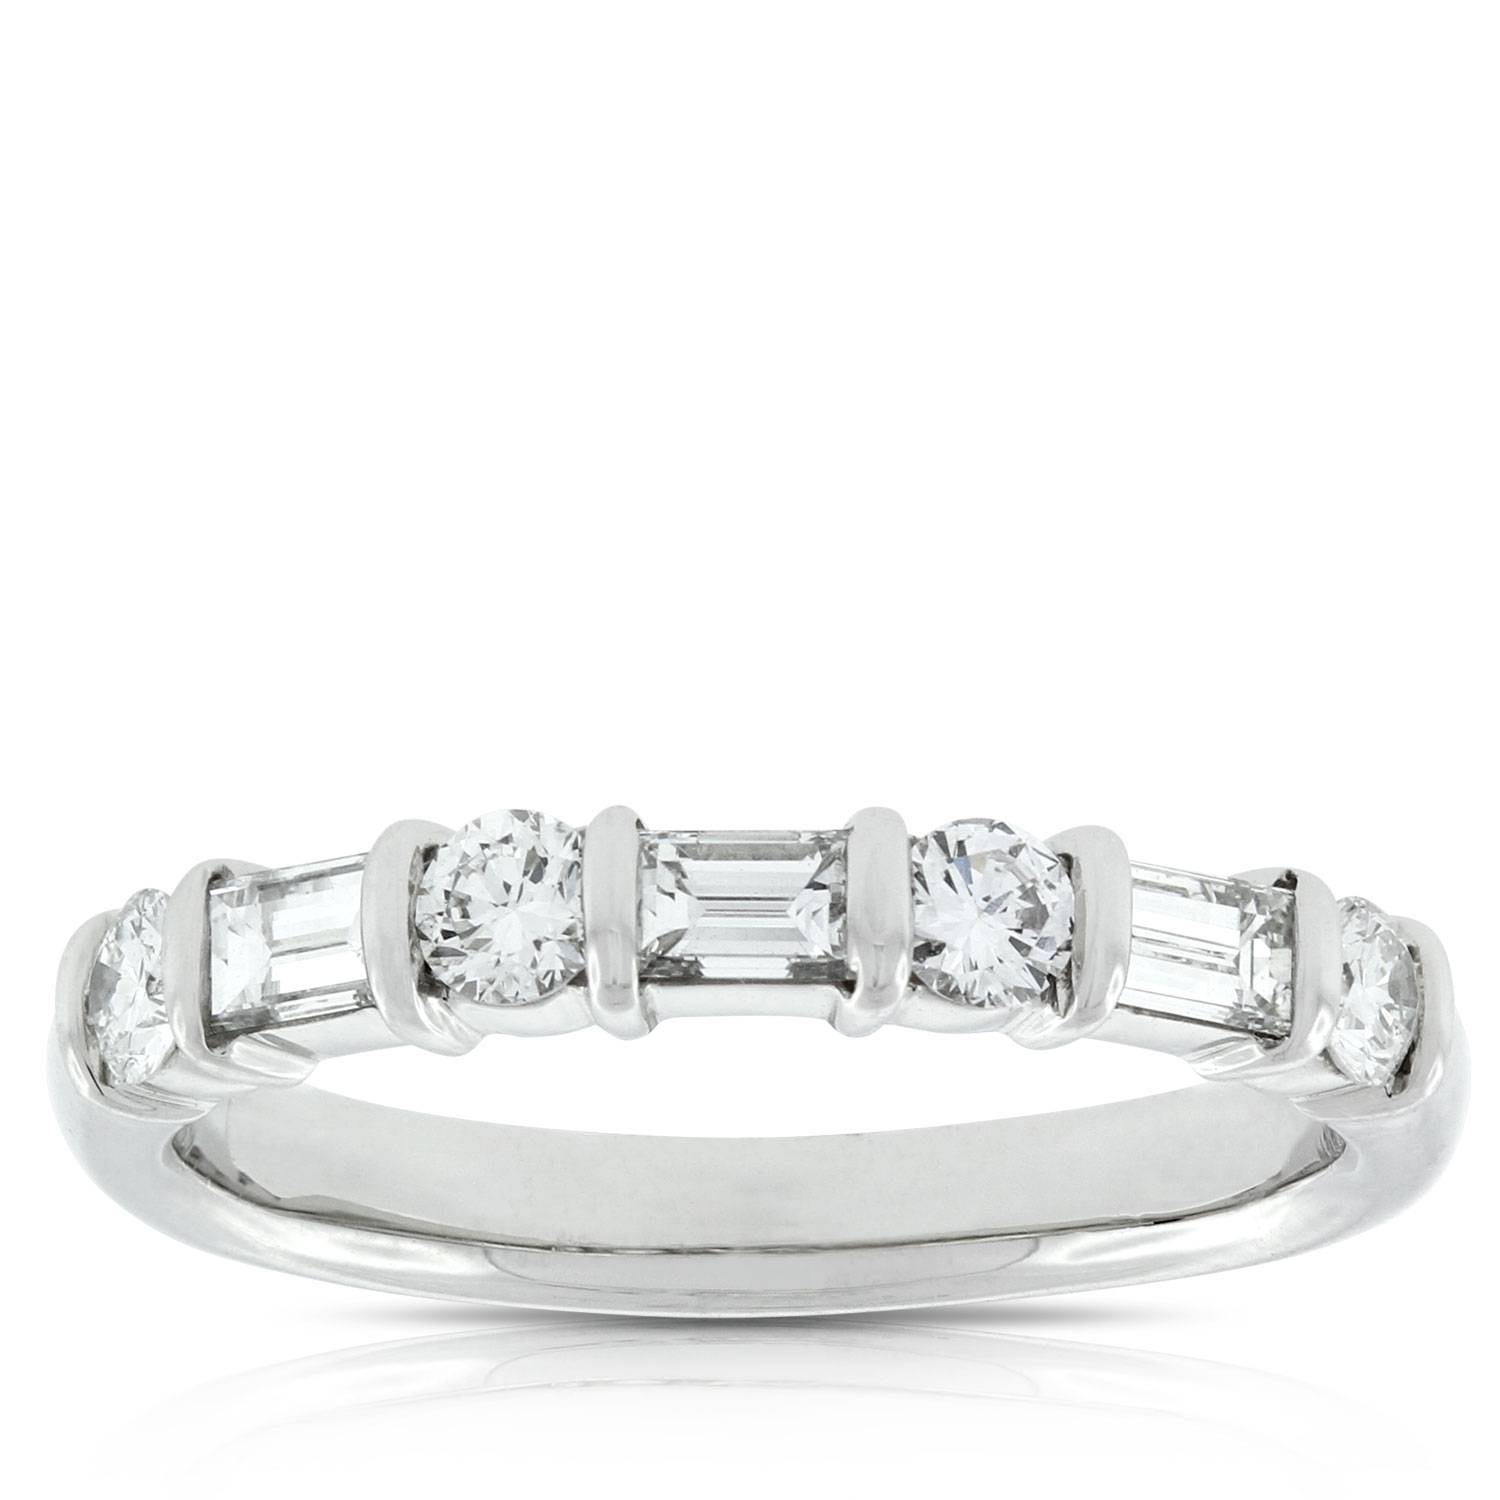 Baguette & Round Diamond Ring, 3/4 Carat In Platinum | Ben Bridge With Regard To Most Up To Date Anniversary Rings With Baguettes (View 5 of 25)